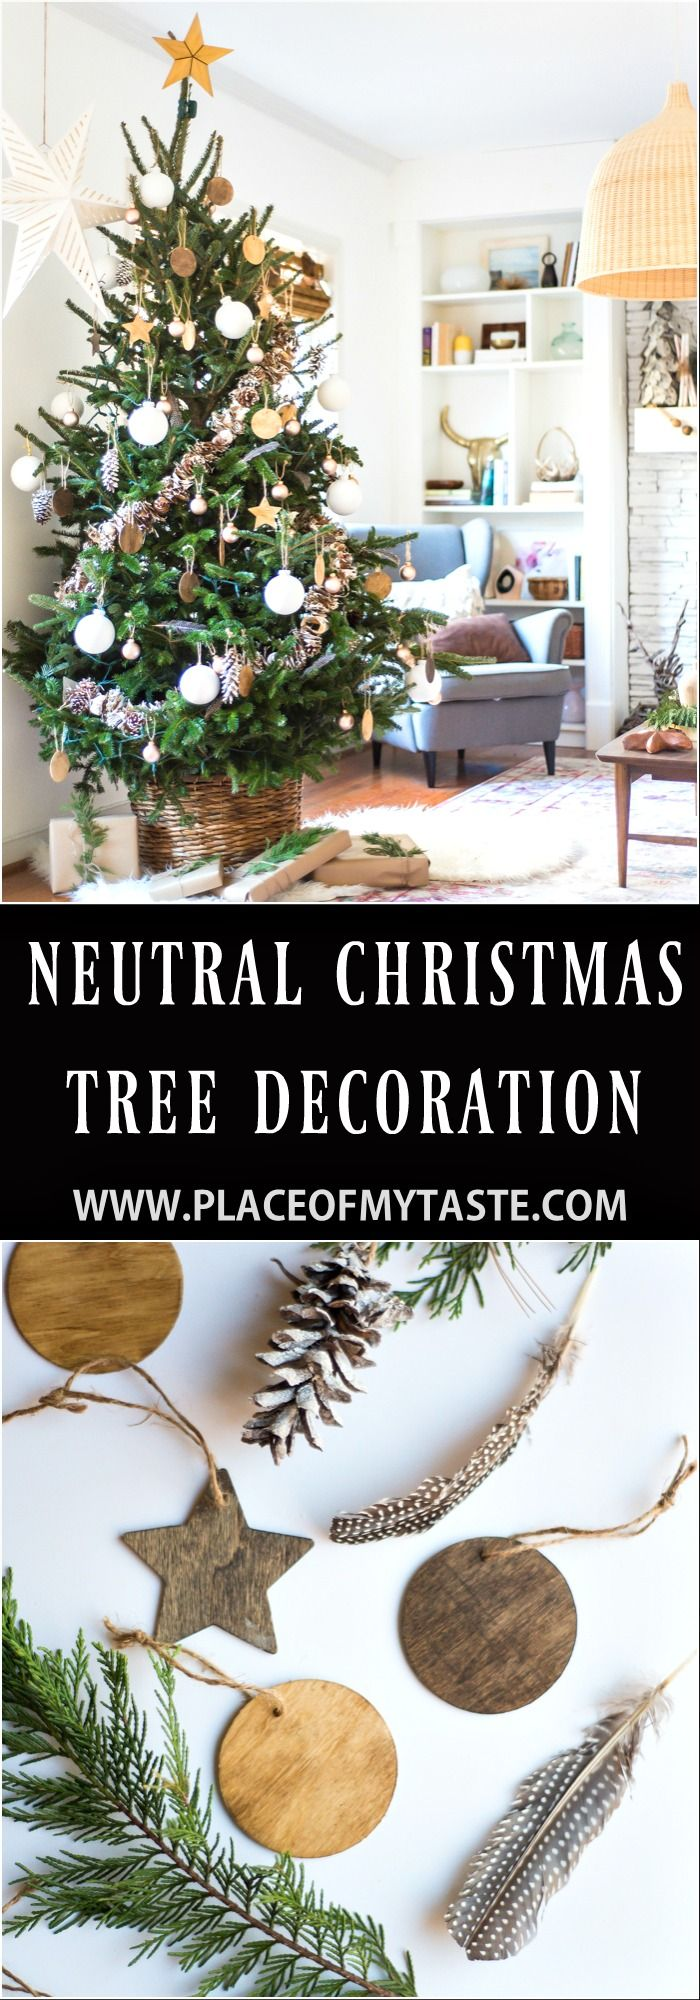 Come and see this beautiful neutral Christmas tree decoration yourself. So pretty and there are a few simple ornaments you can do yourself!